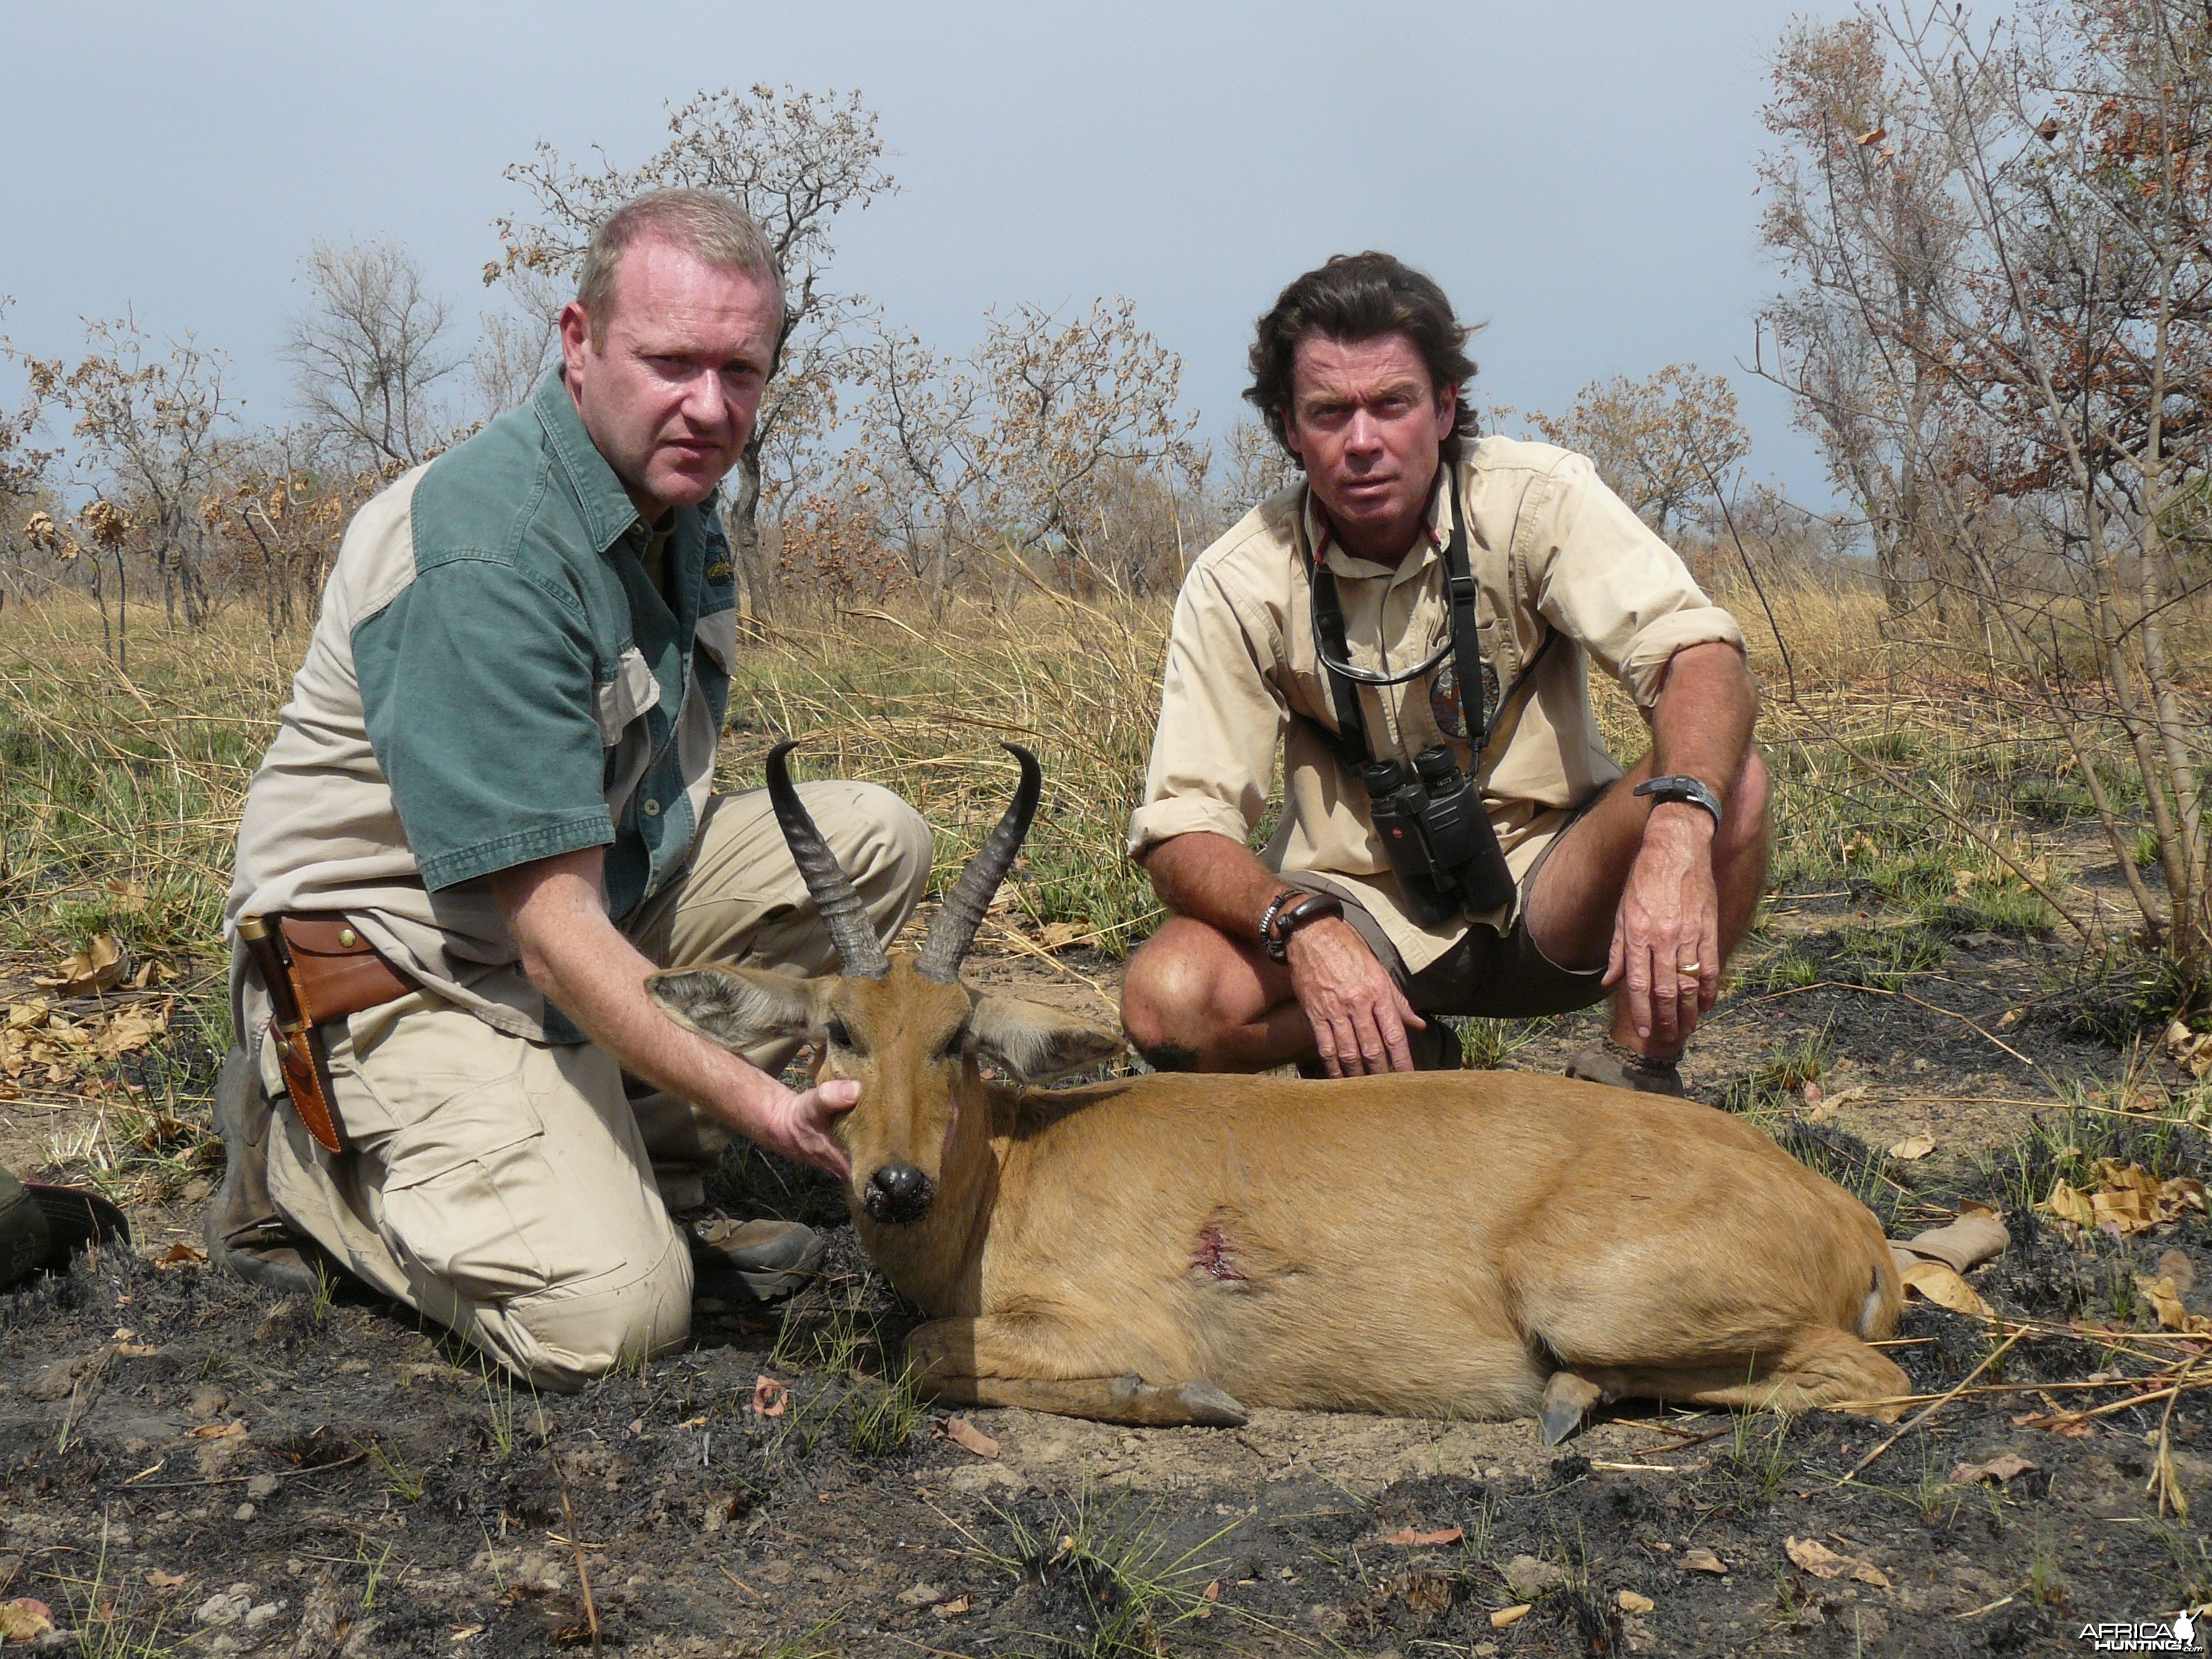 Bohor/Nagor Reedbuck hunted in Benin with Club Faune